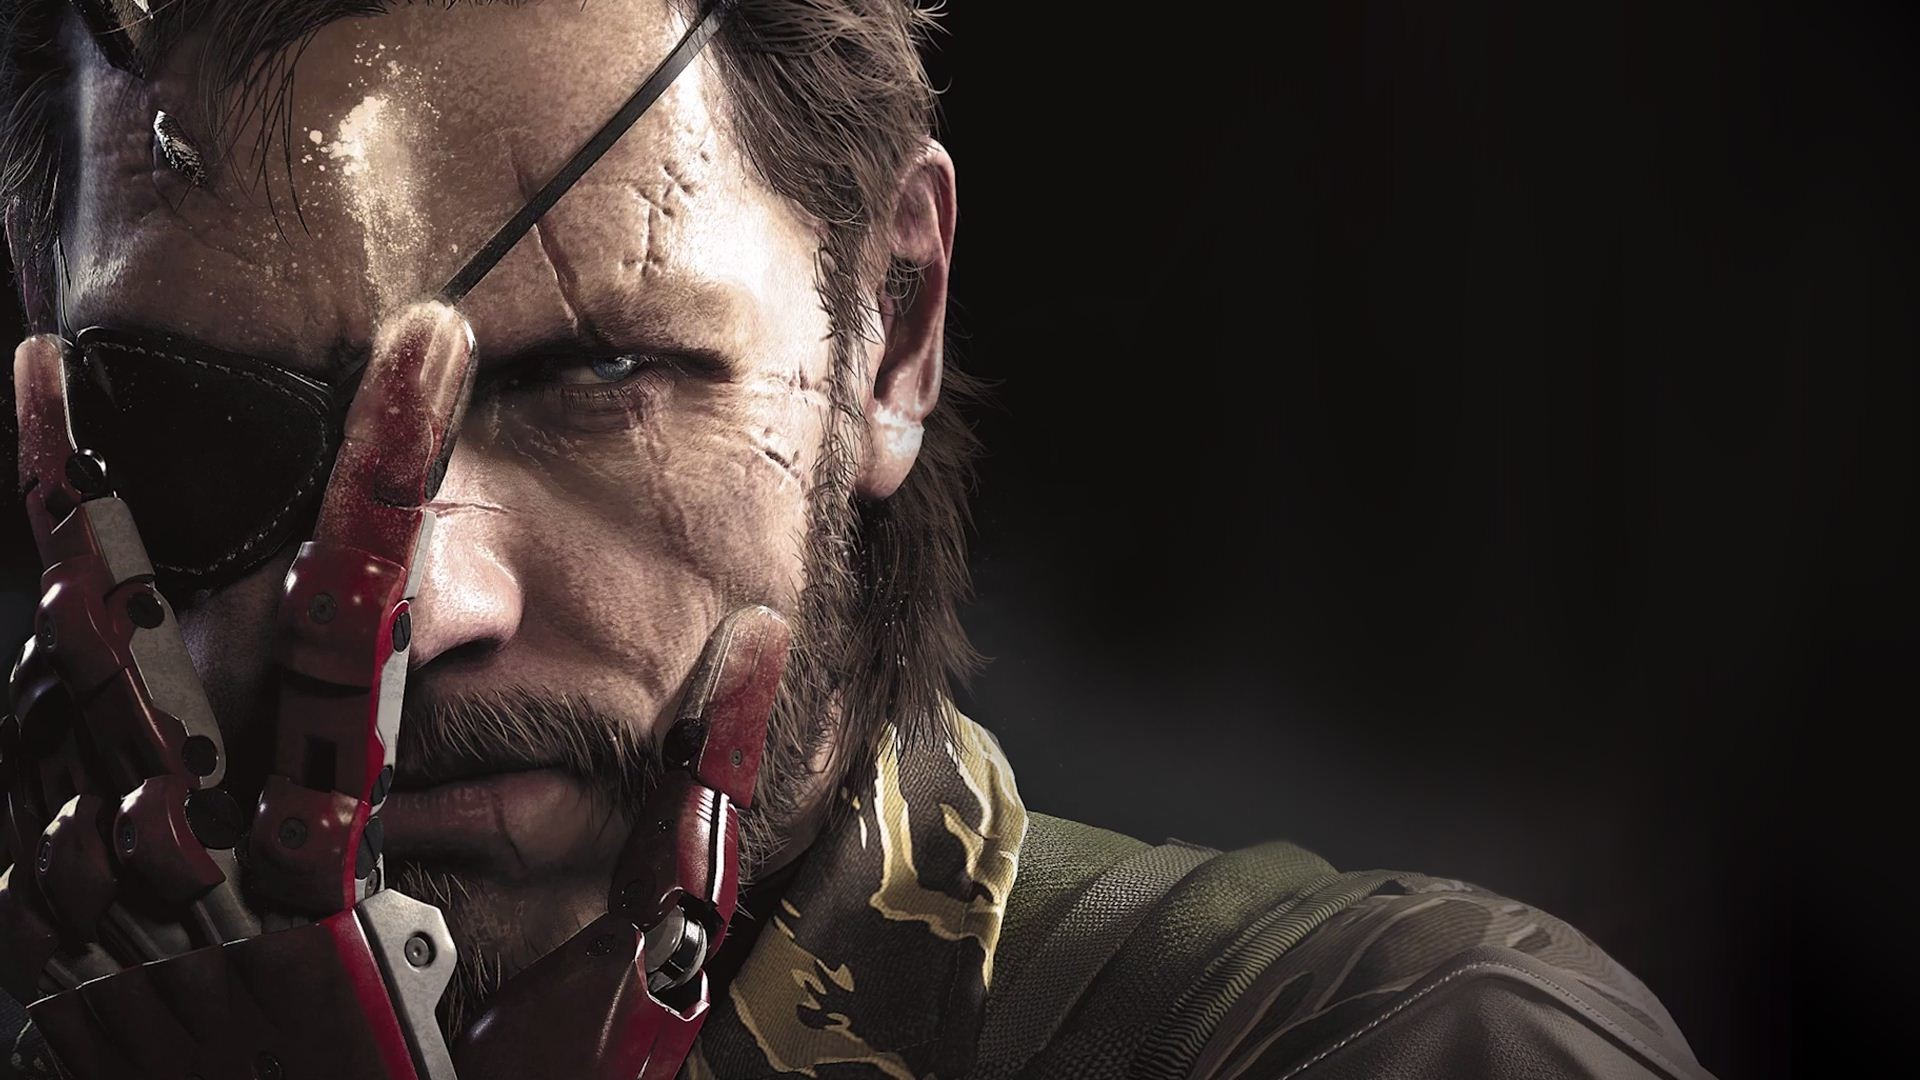 1920x1080 Wallpapers de Metal gear solid V HD